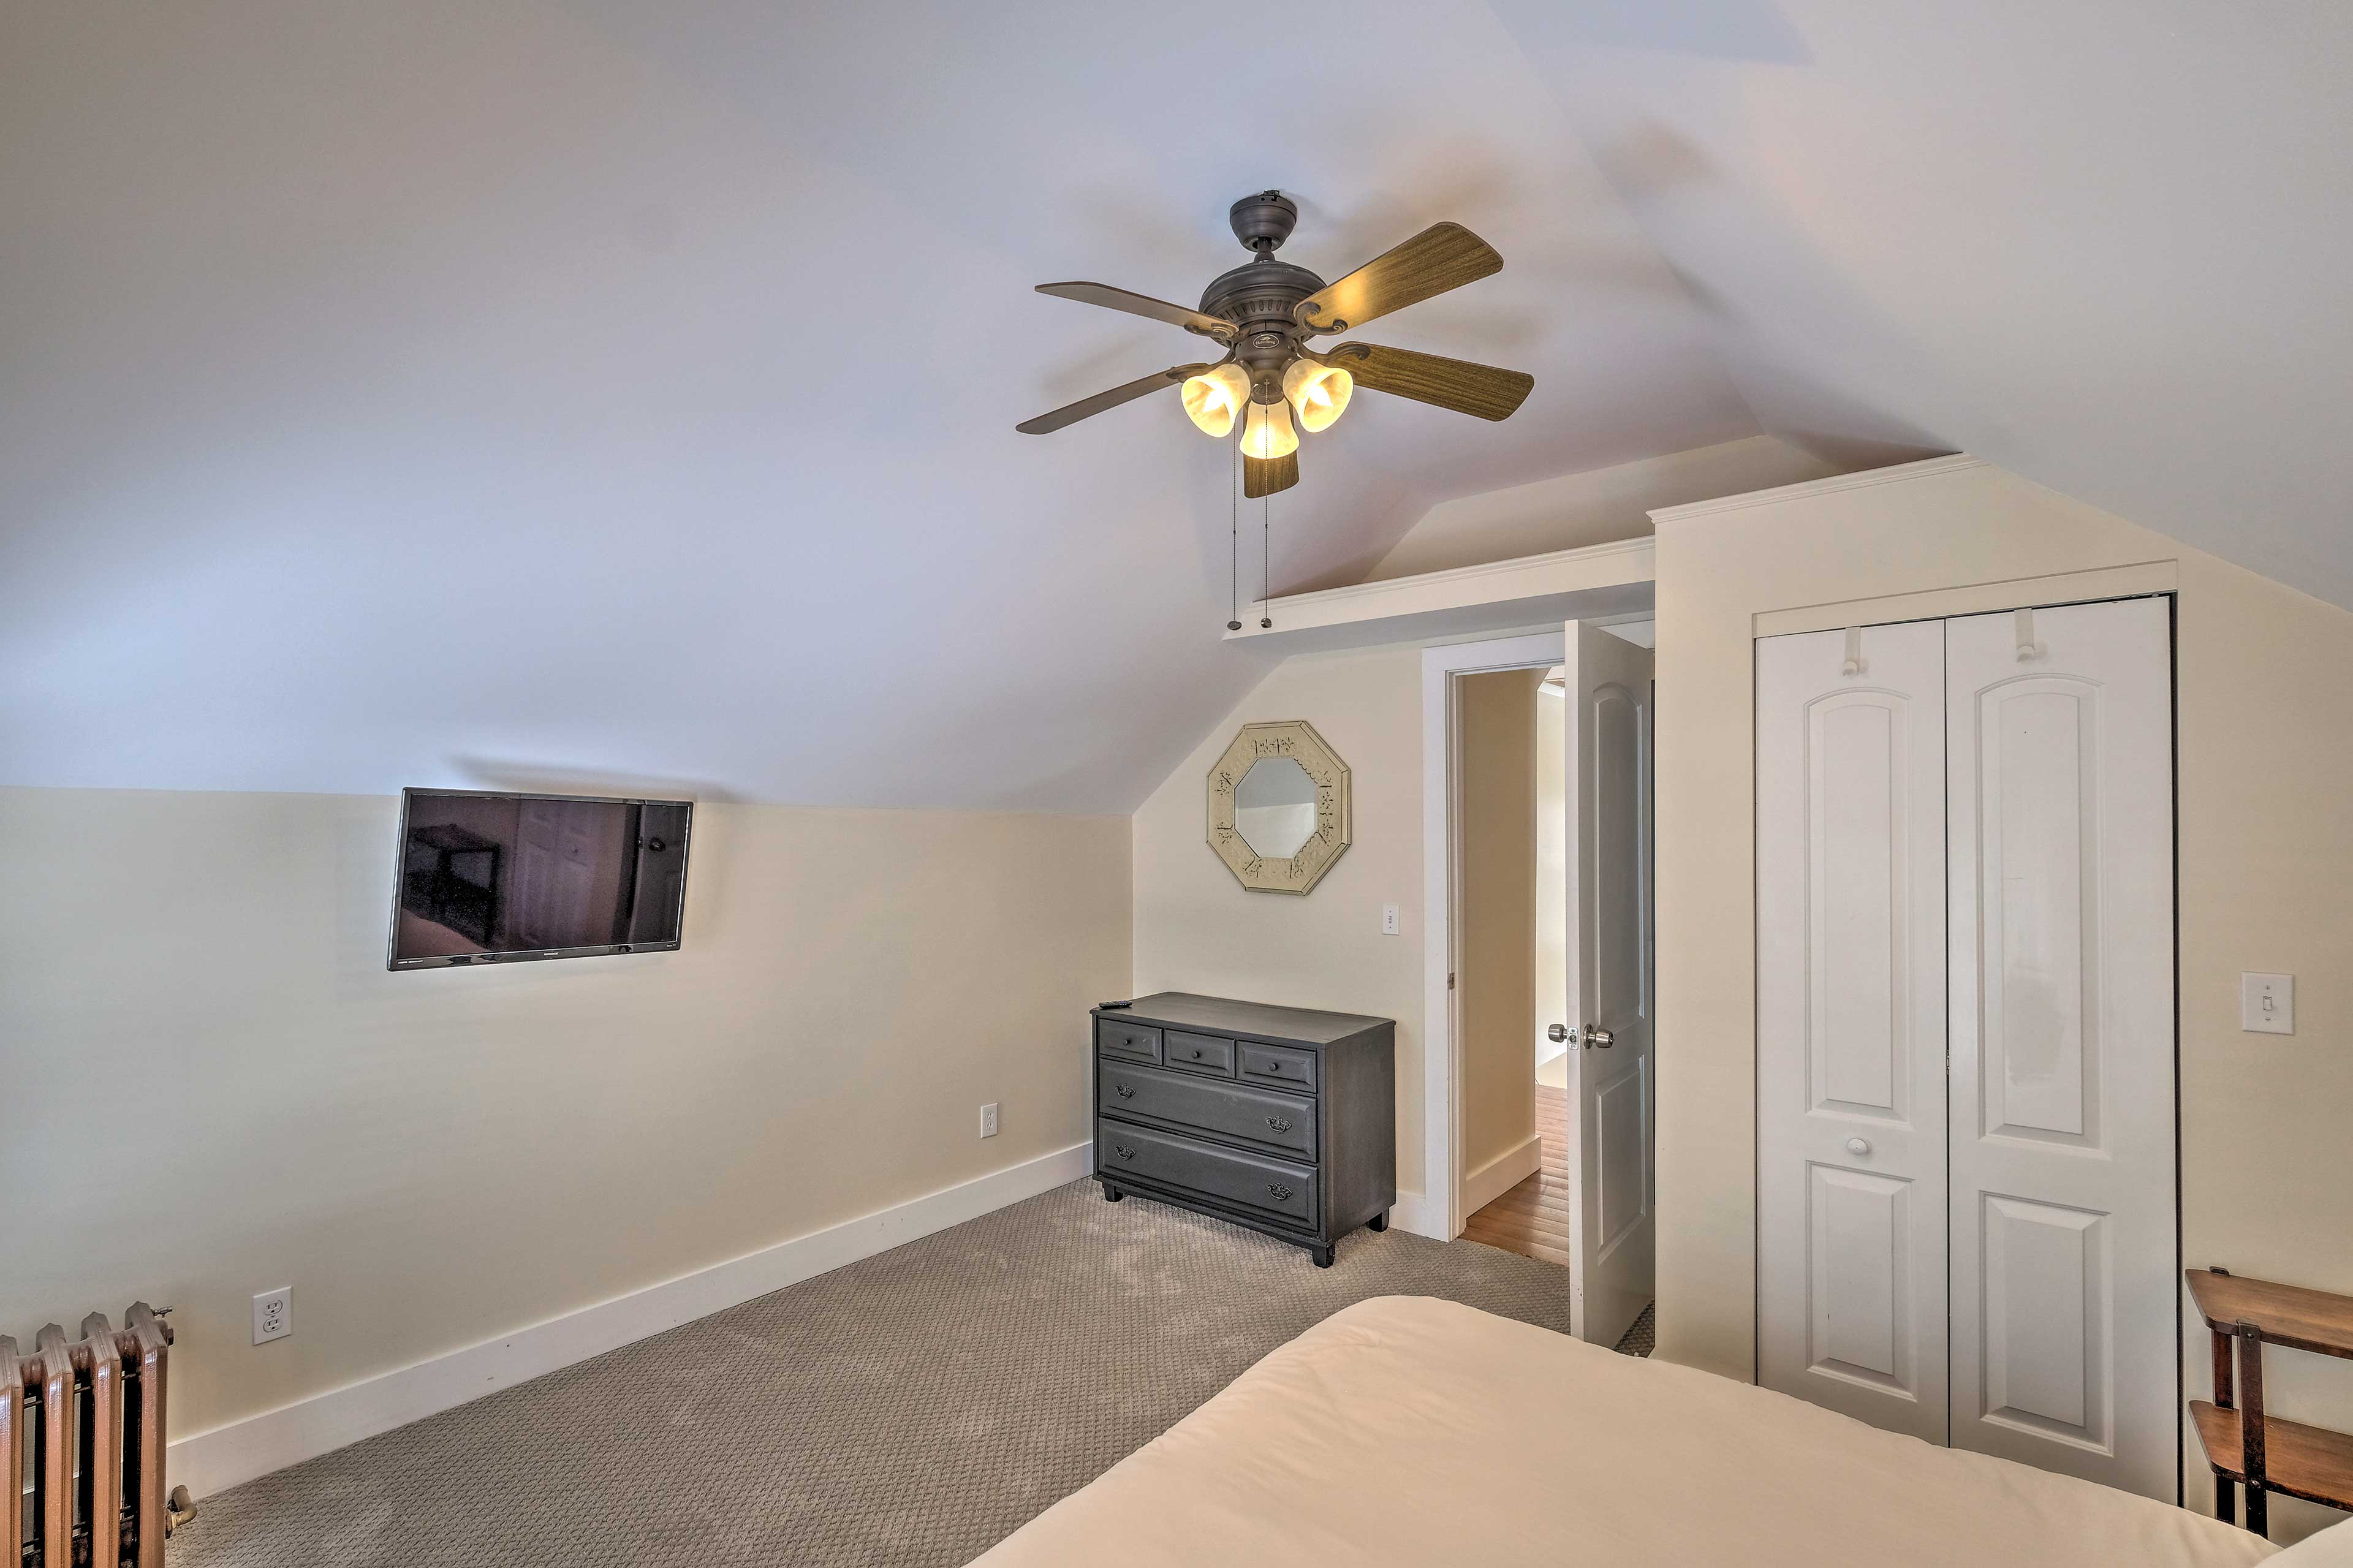 A mounted flat-screen TV provides in-bed entertainment at any time of day!